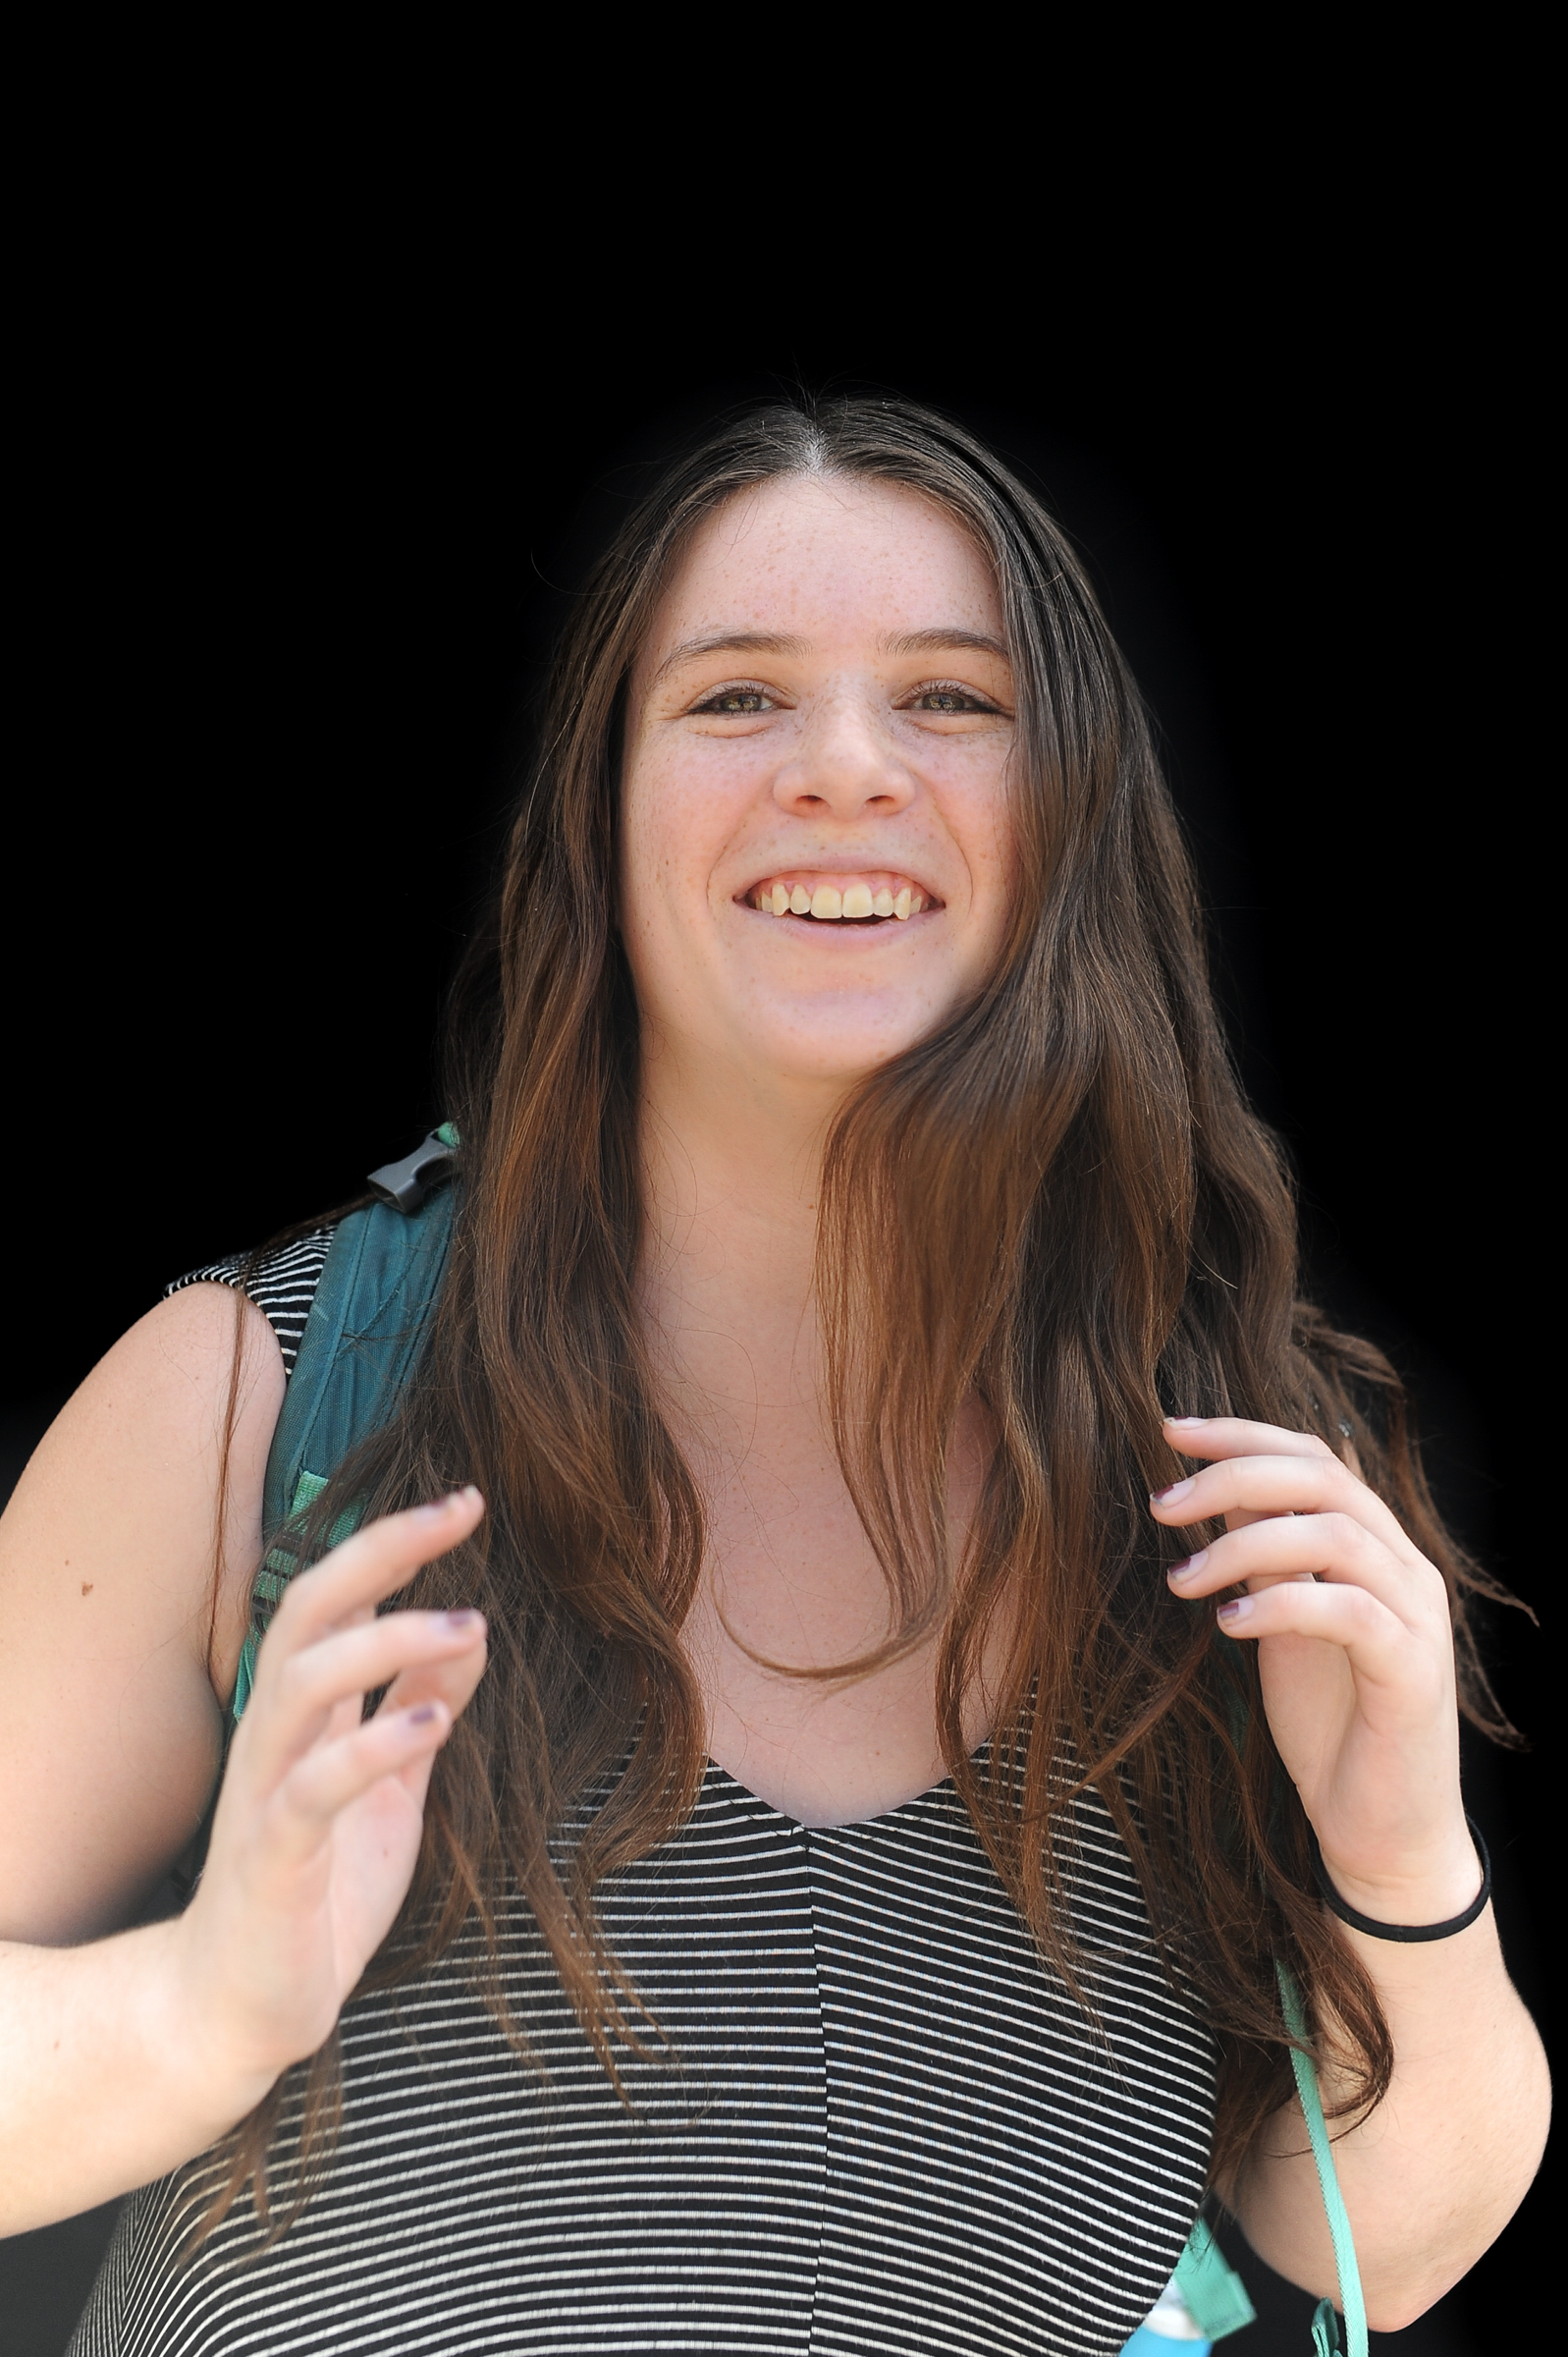 Name: Phoebe KellerClass Year: 2018Major: Government and HistoryHometown: Rye, NYActivities: Former Managing Editor of the Daily Sun, Roosevelt InstituteIf you could make up a major, what would it be?: Soviet StudiesWhy would you be on the front page of The Cornell Daily Sun?: For writing the articleBlurb: I'd rather be in DC